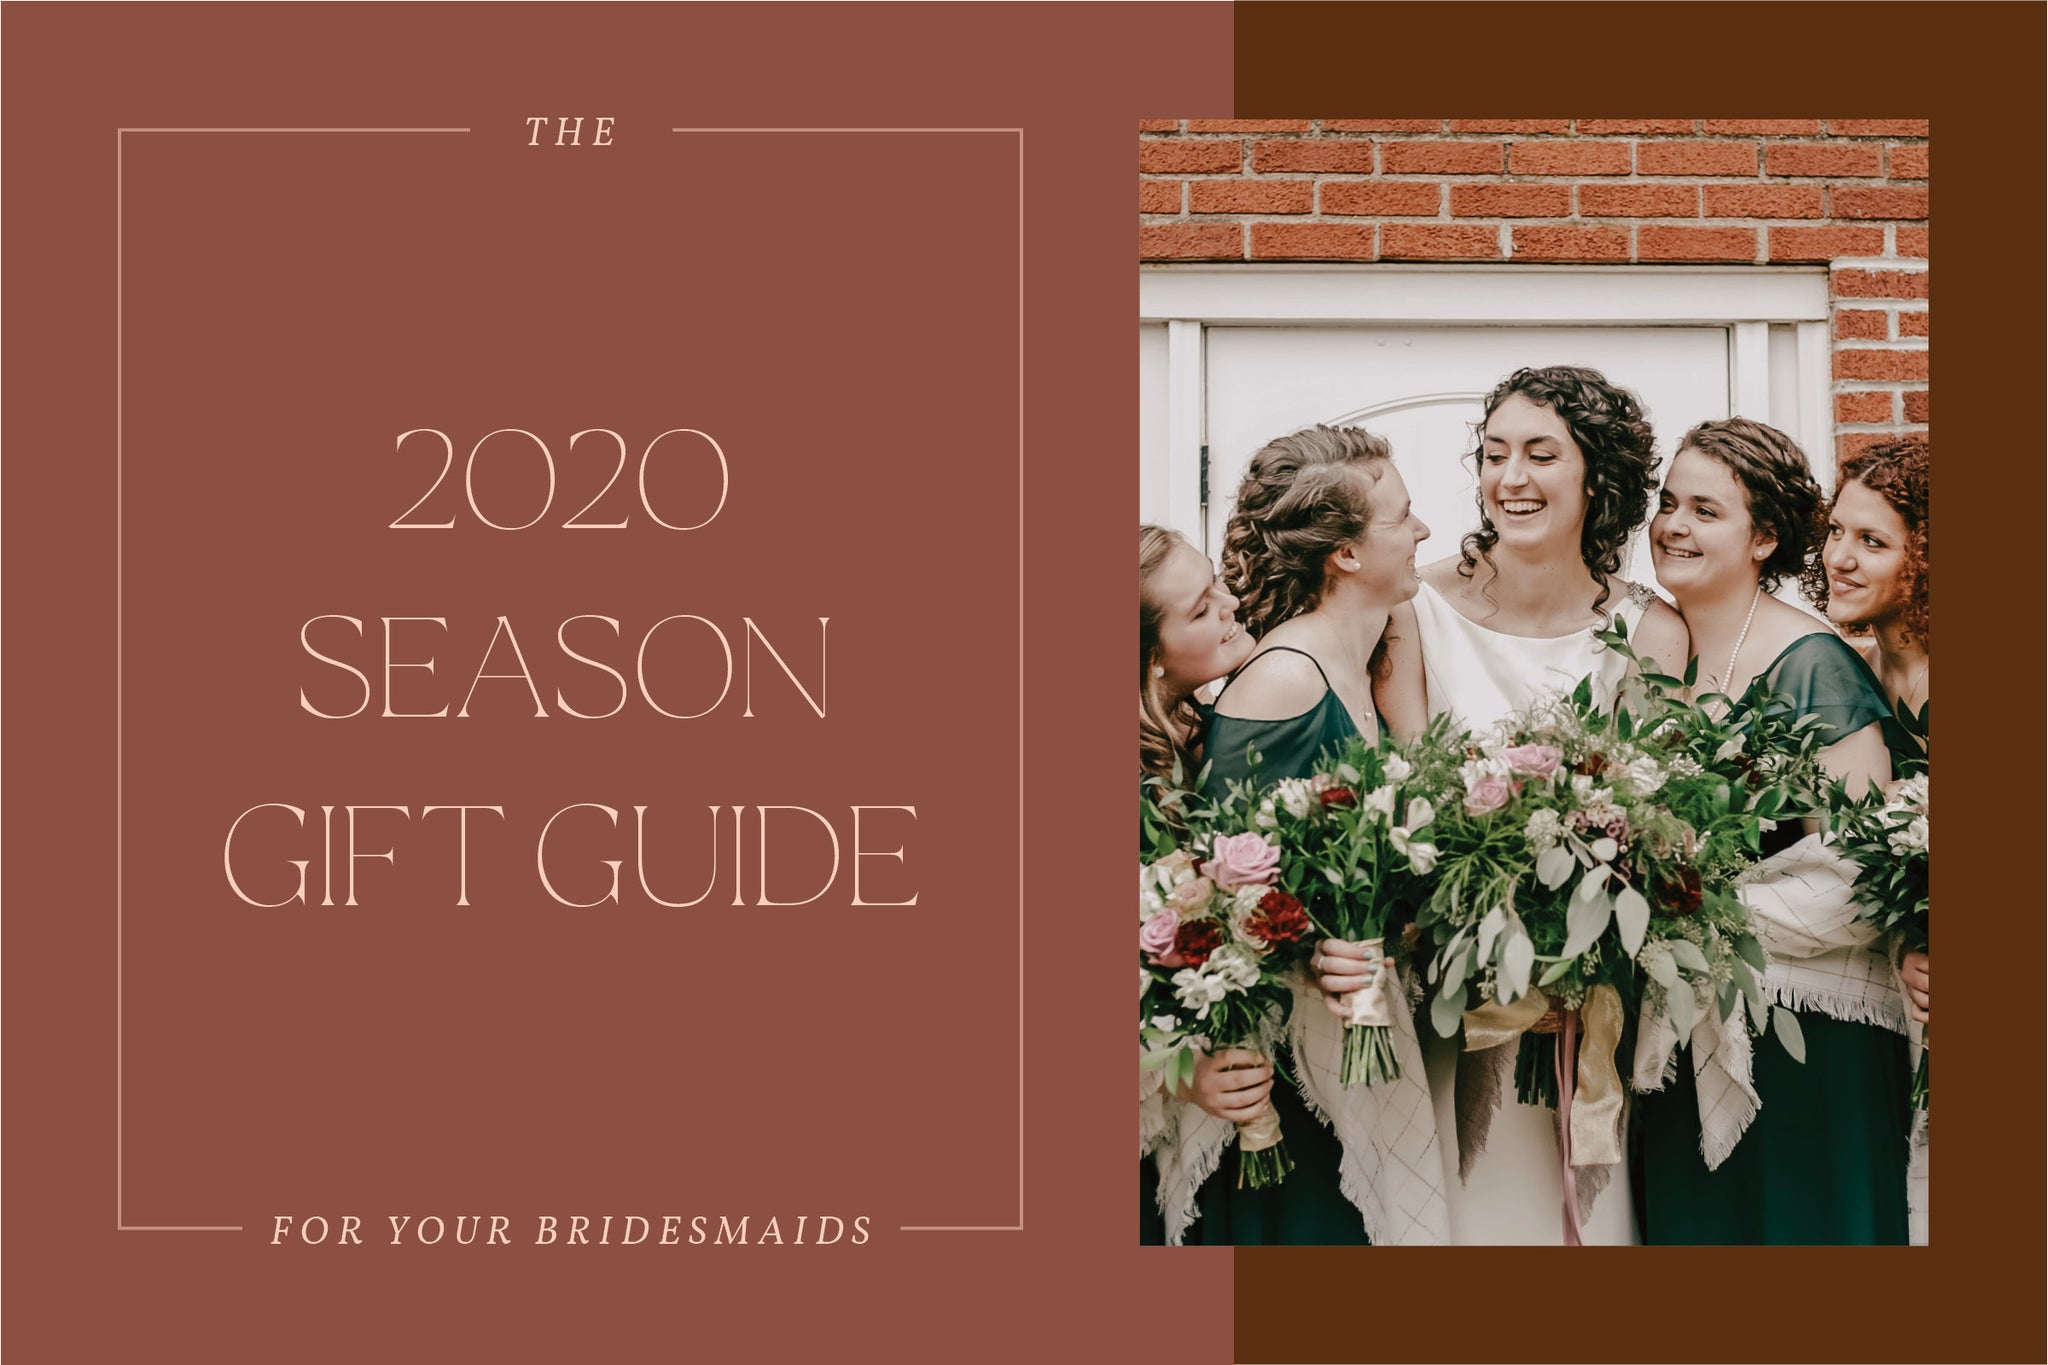 The 2020 Season Gift Guide for Your Bridesmaids